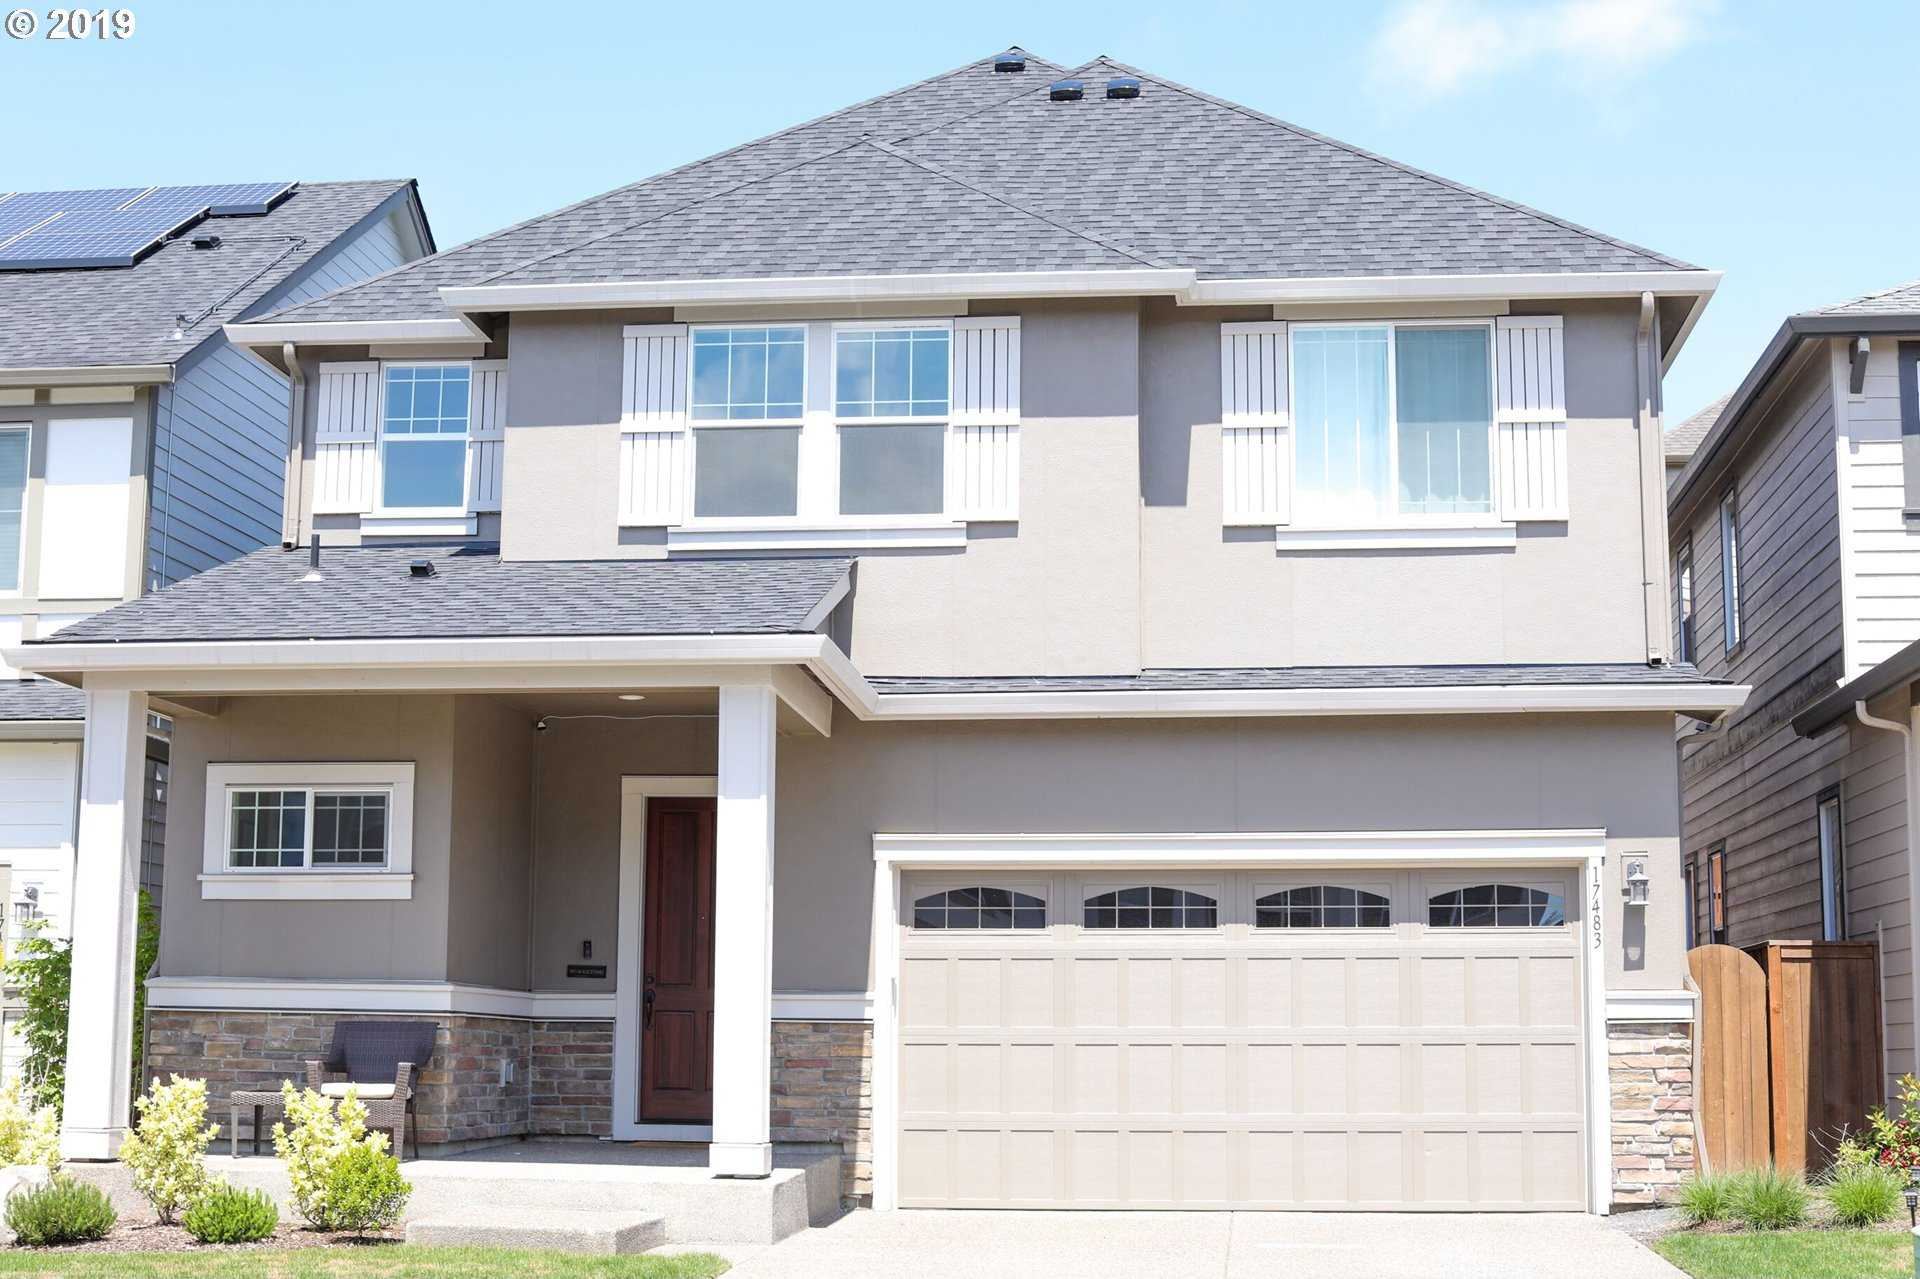 $544,900 - 4Br/3Ba -  for Sale in River Terrace Collection, Beaverton